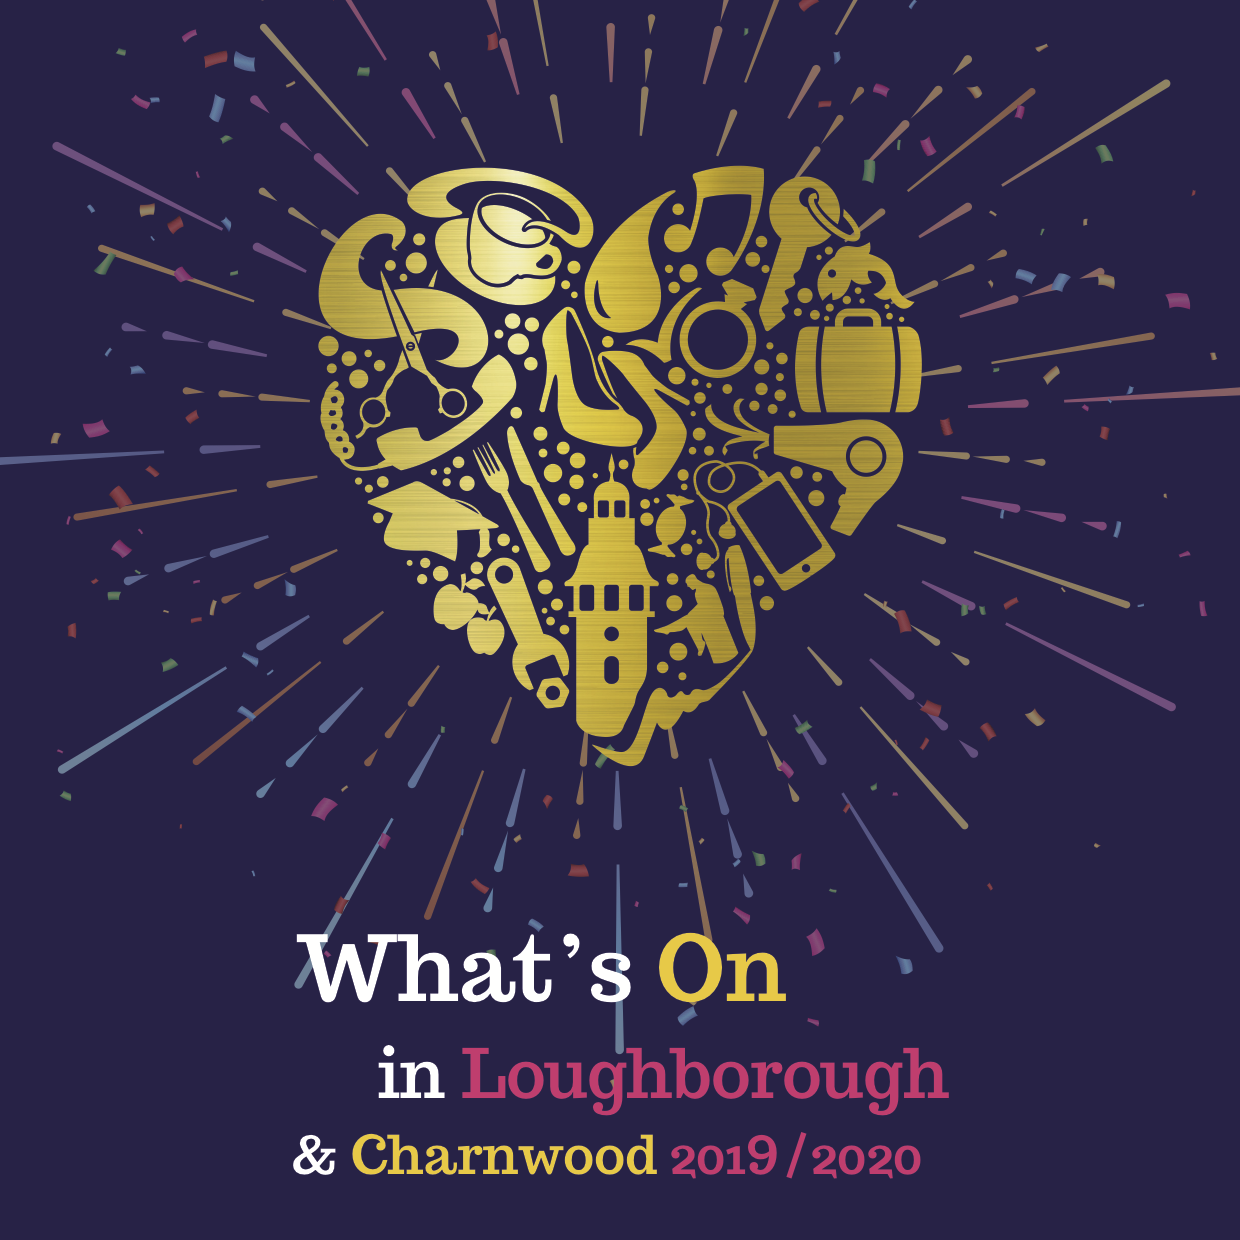 loughborough events guide front cover